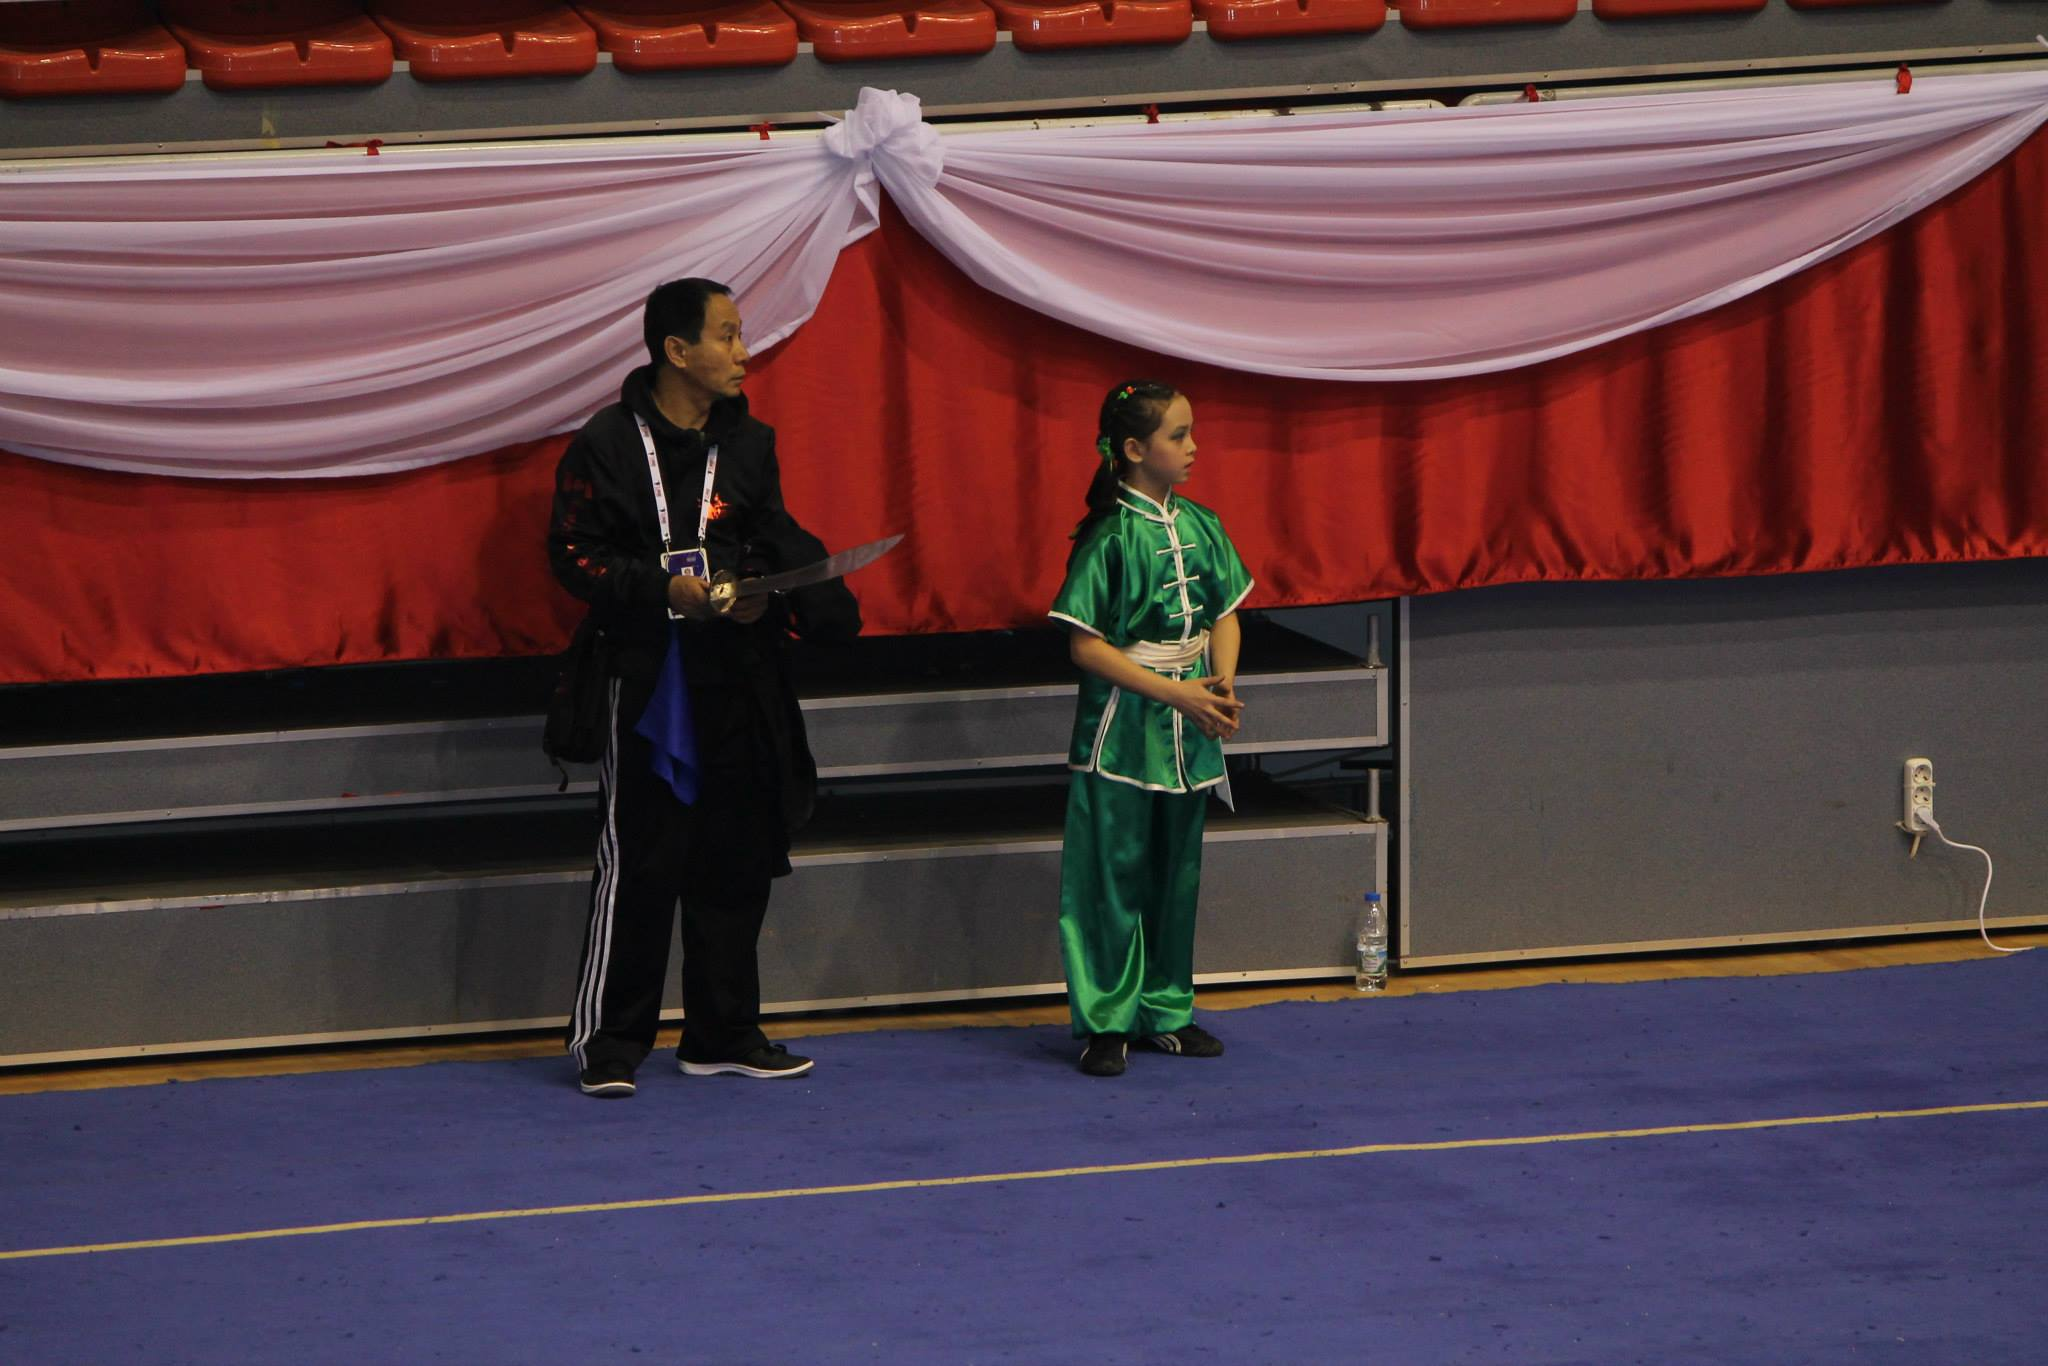 Wayland_Li_Wushu_World_Junior_Championships_2014_Team_Canada_in_Turkey_15.jpg